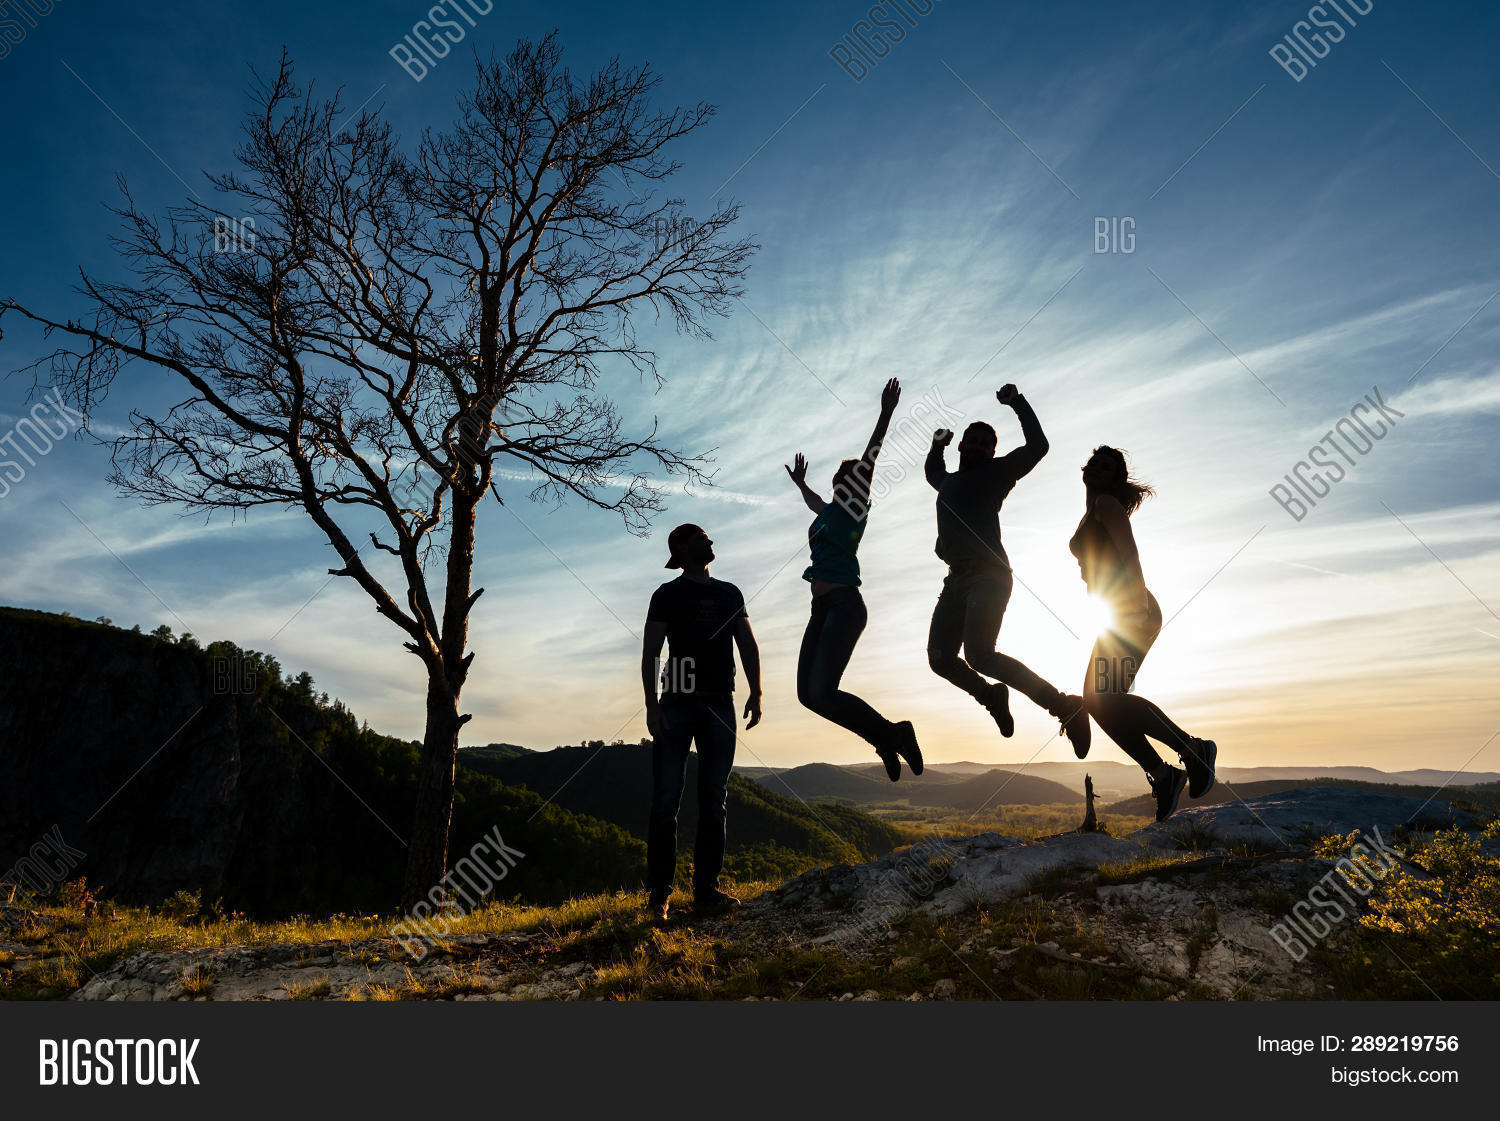 adult,america,american,asia,at,beautiful,camping,canada,europe,exam,family,friends,fun,group,happiness,happy,have,having,hiking,holiday,joy,joyful,jump,leisure,life,lifestyle,luck,lucky,nature,ones,pass,people,picnic,silhouette,sky,sport,students,success,summer,sun,sunset,team,teenagers,the,together,tourists,travel,vacation,young,youth